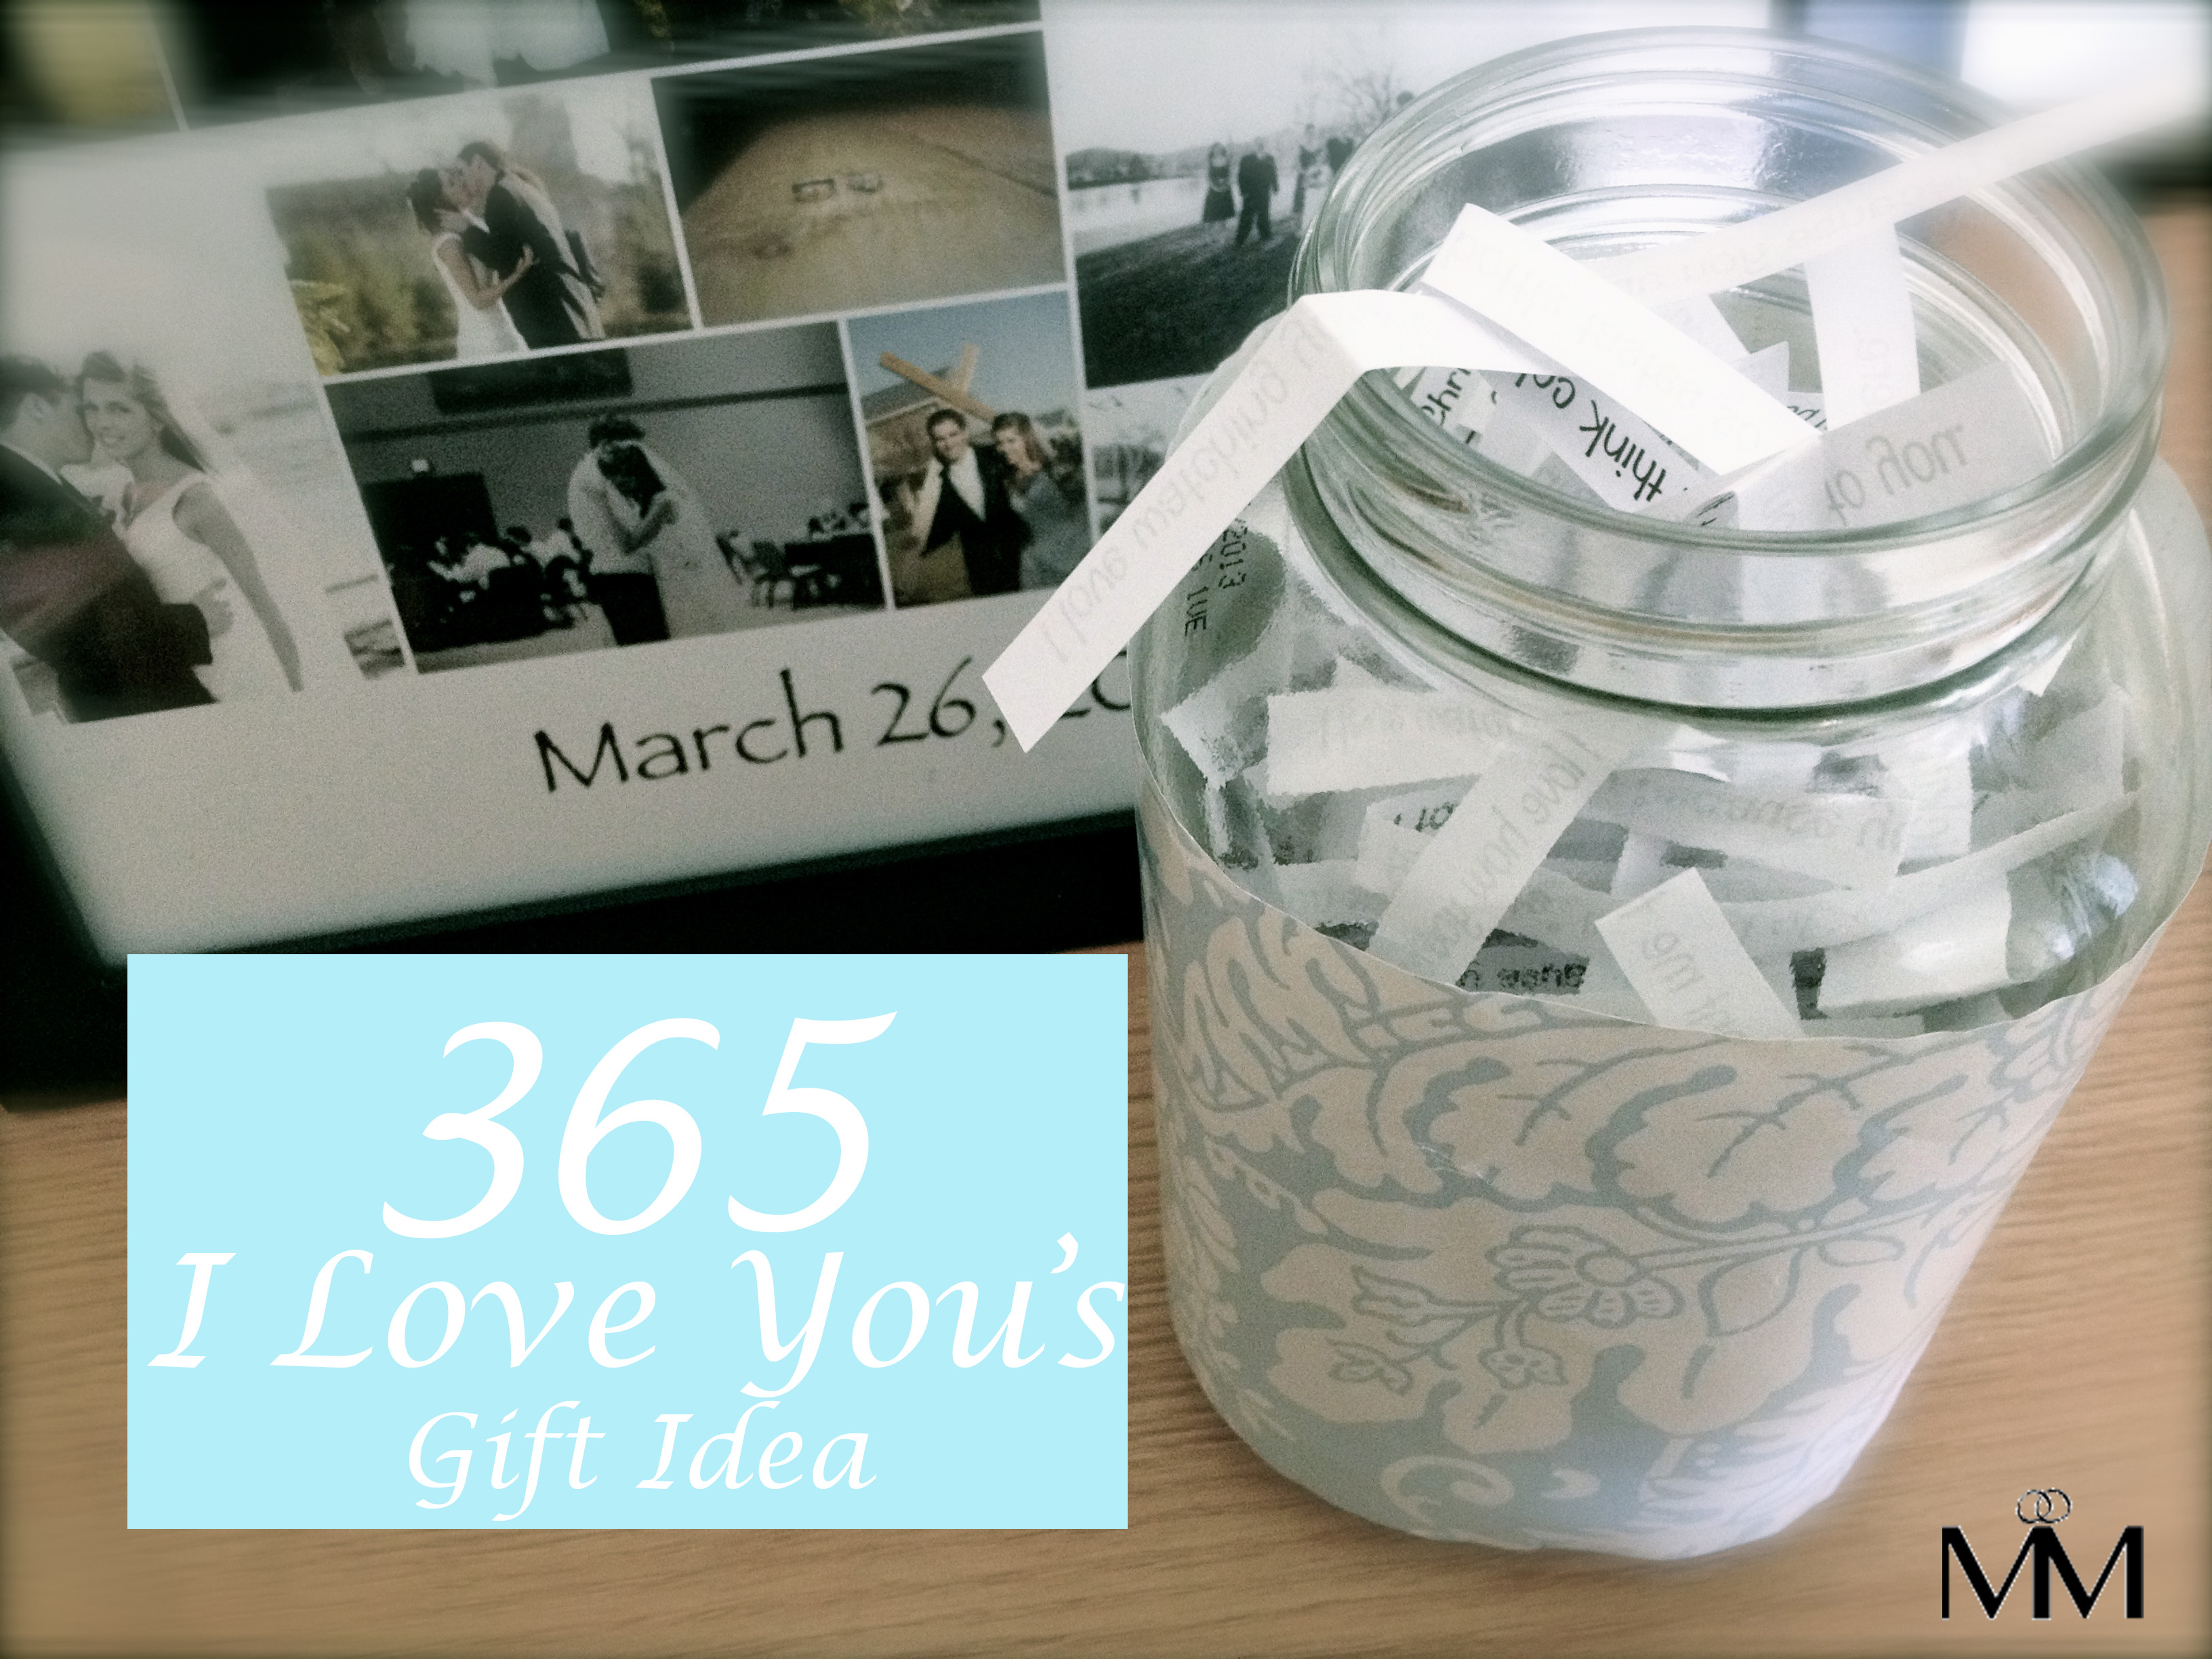 2 Year Anniversary Gift Idea – 365 I Love You's